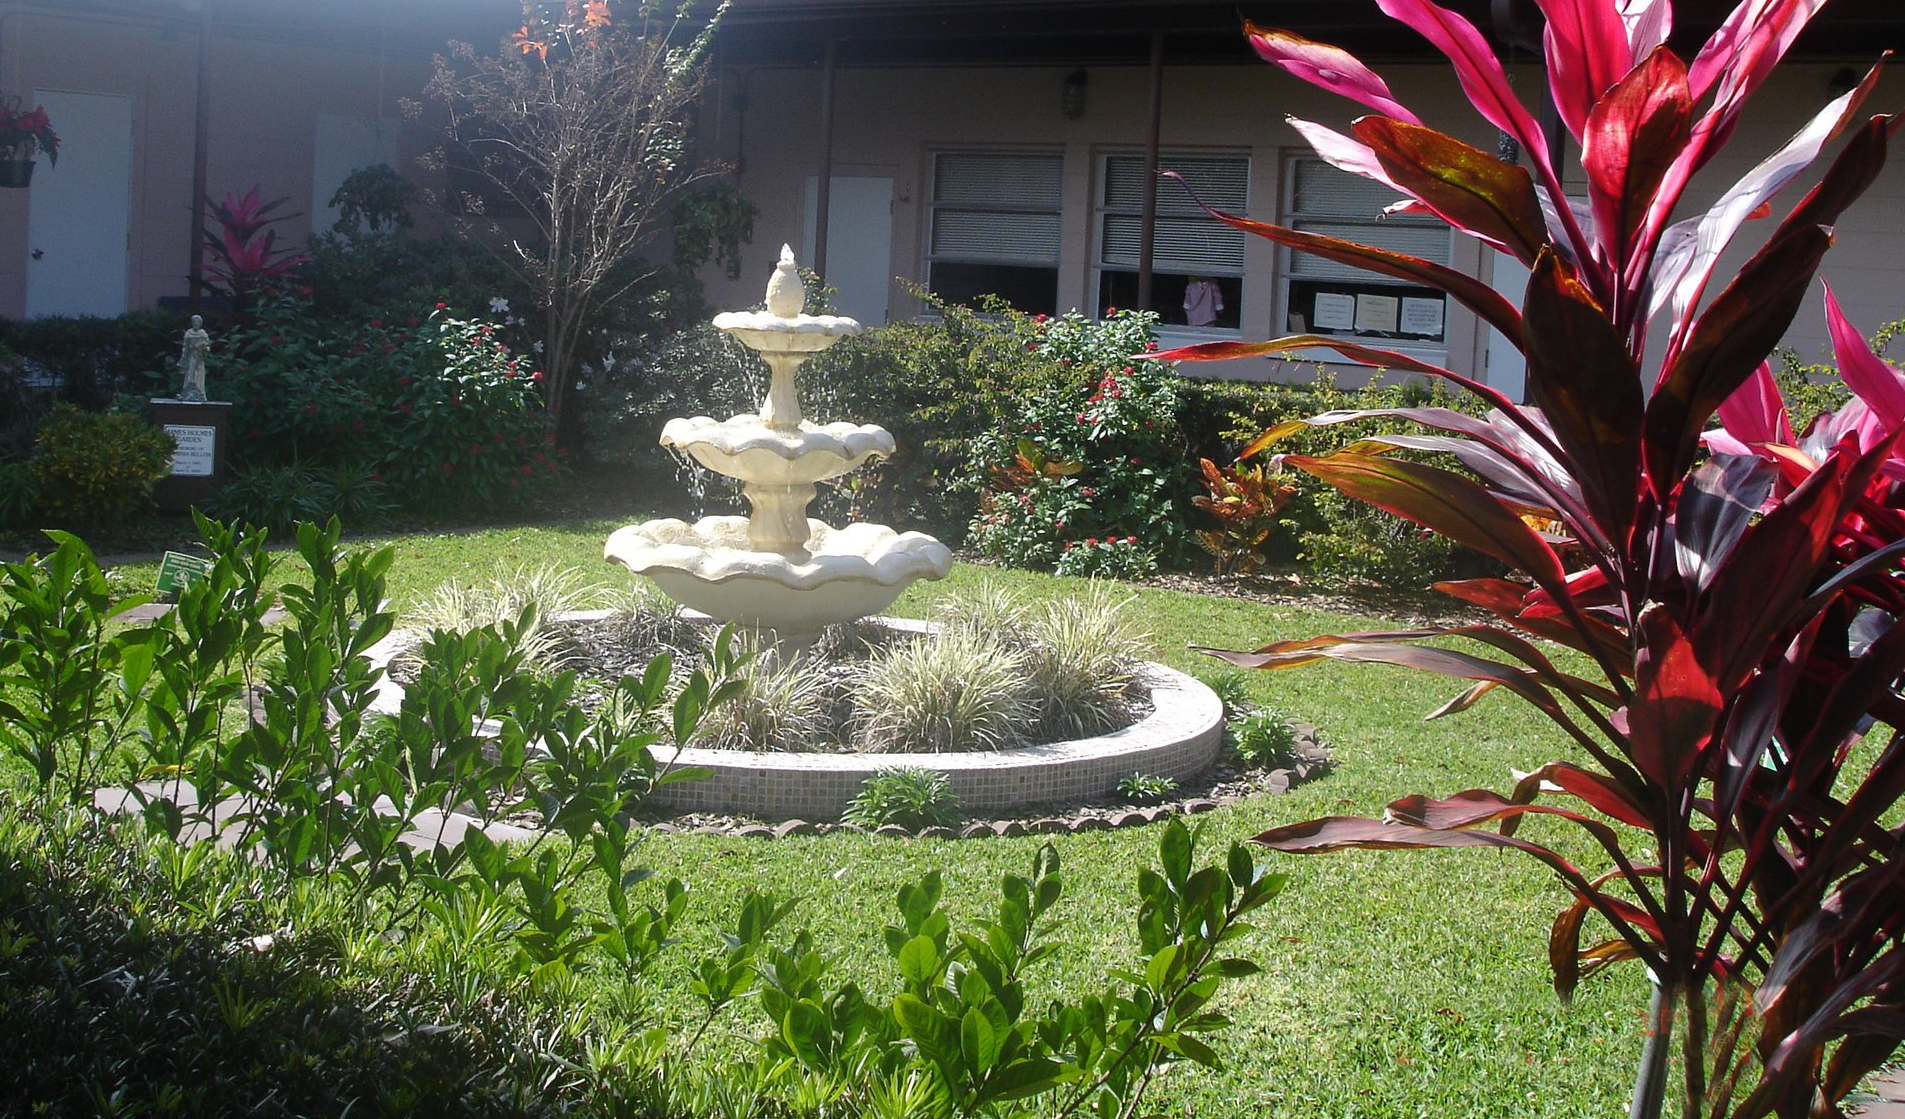 Church Fountain Garden cropped